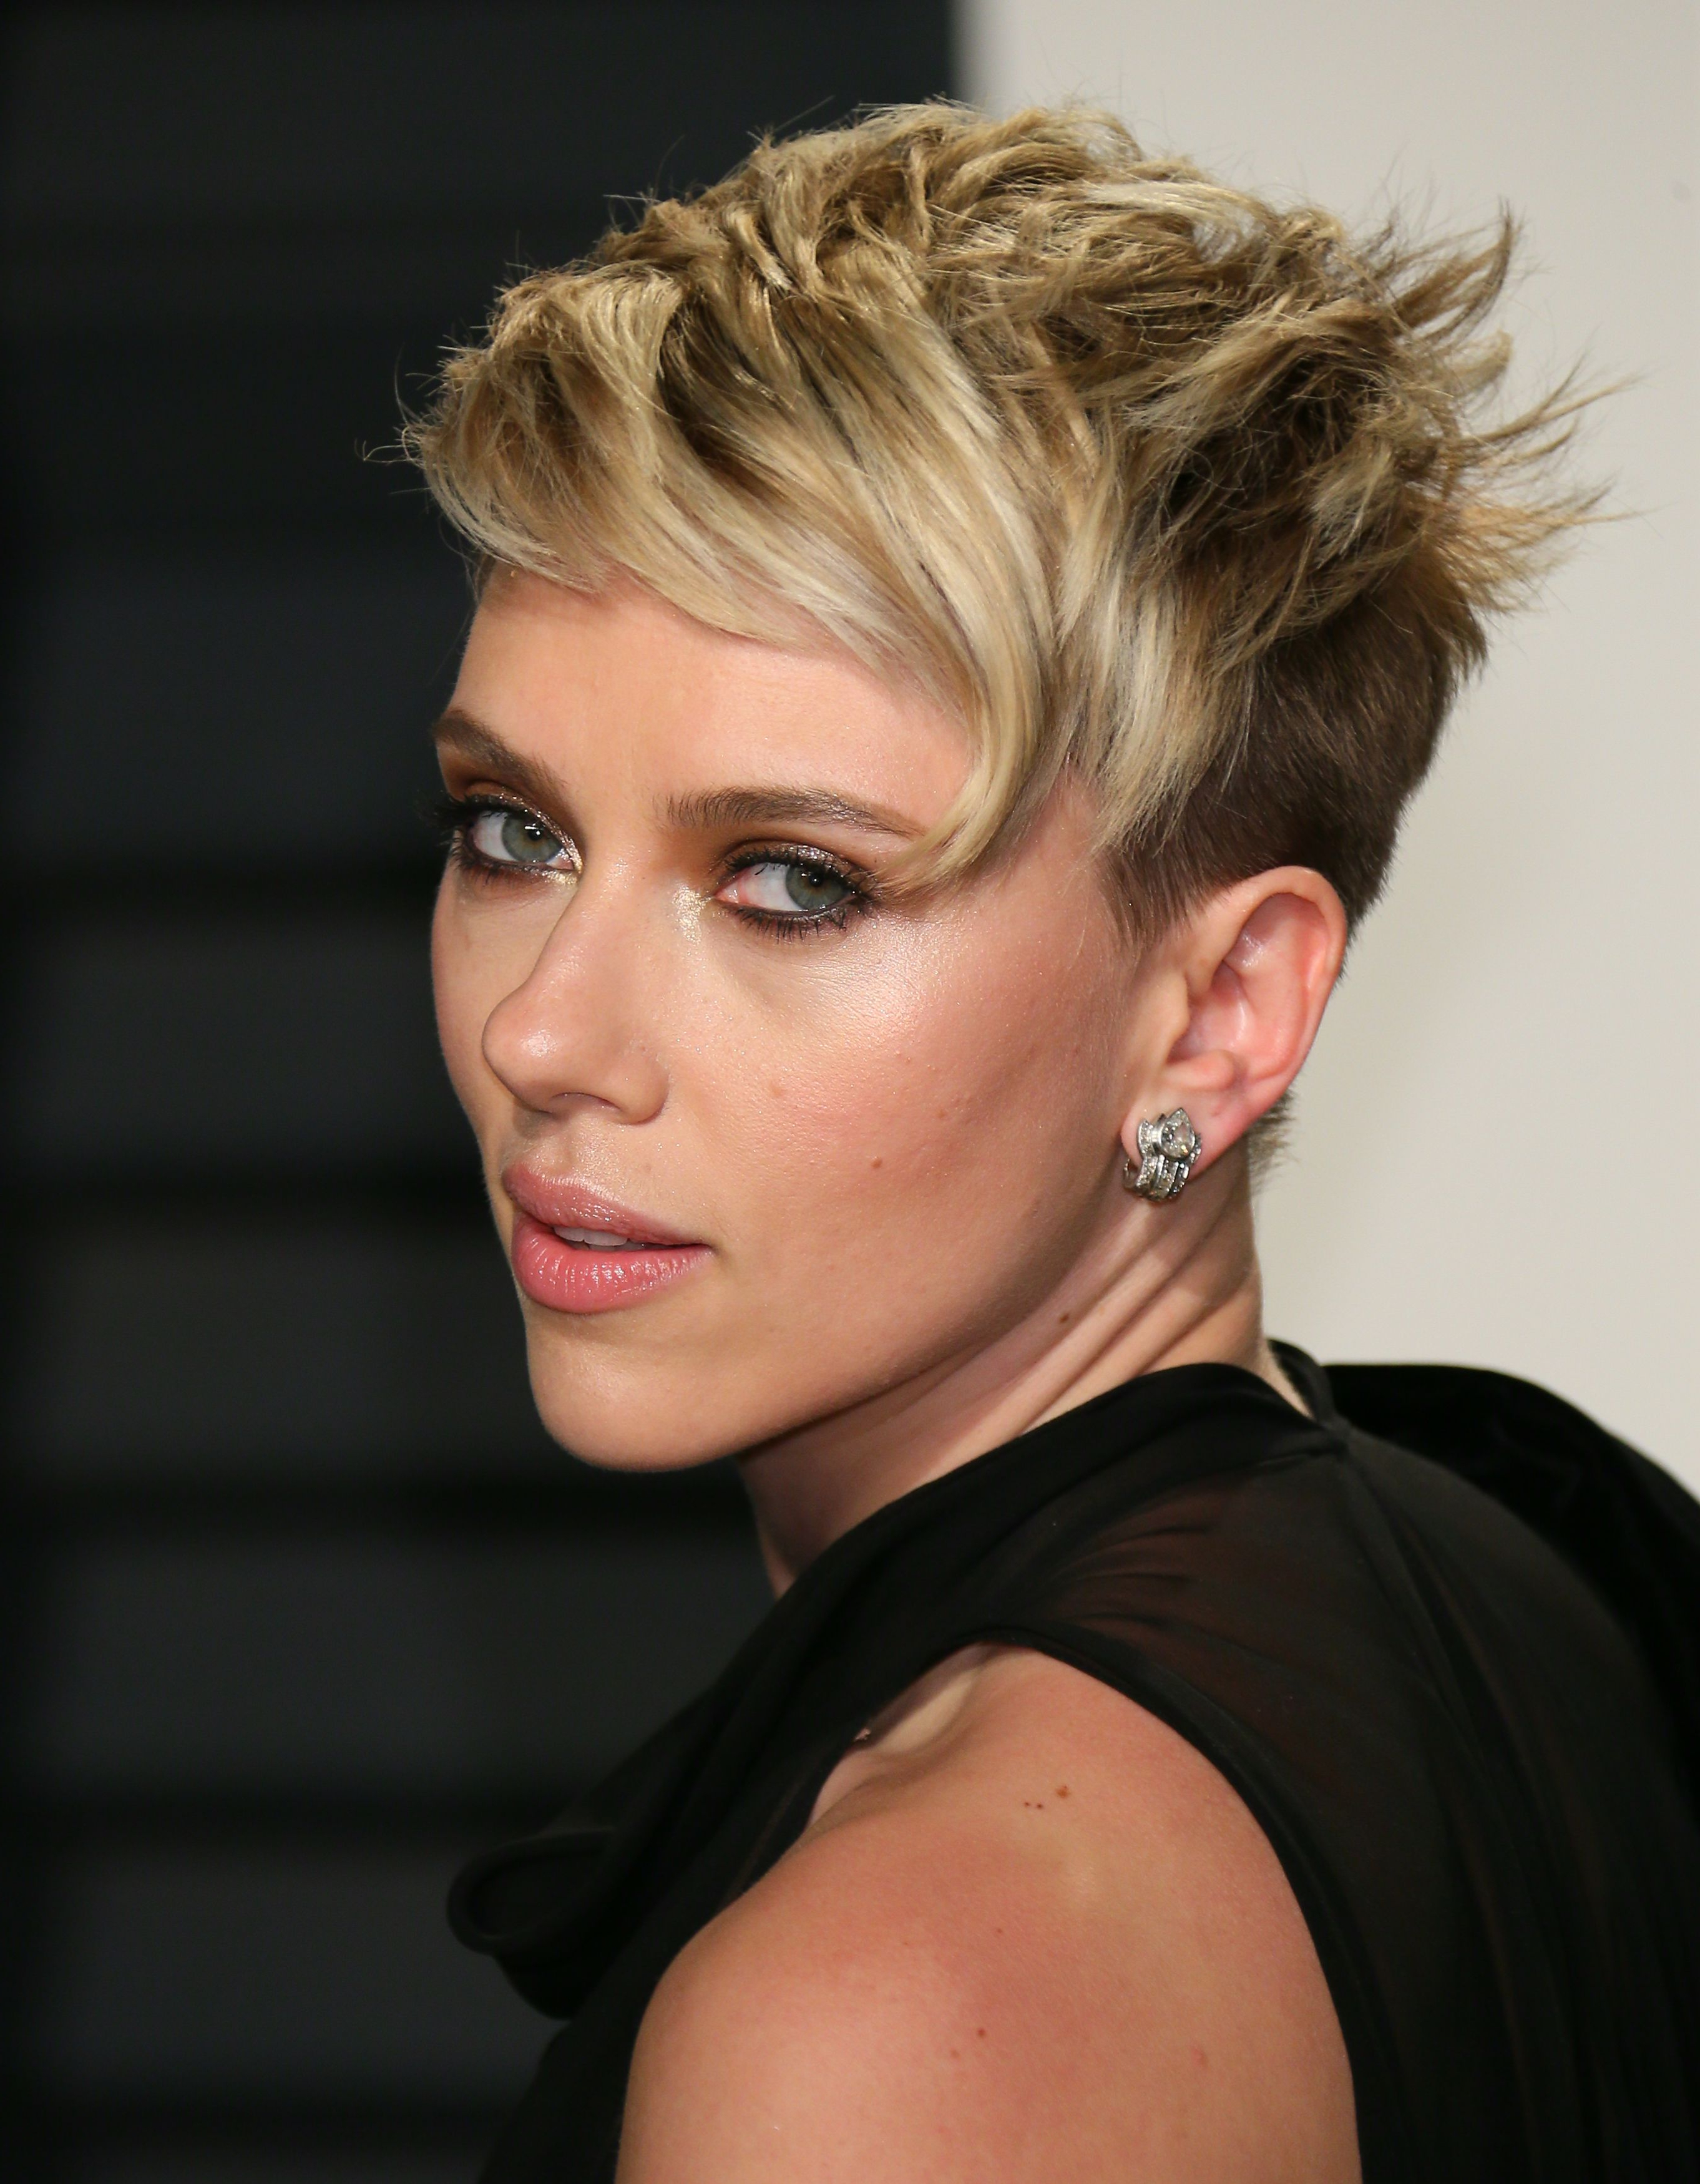 65 Best Short Hairstyles, Haircuts, And Short Hair Ideas For 2018 Pertaining To Celebrities Short Haircuts (View 4 of 25)